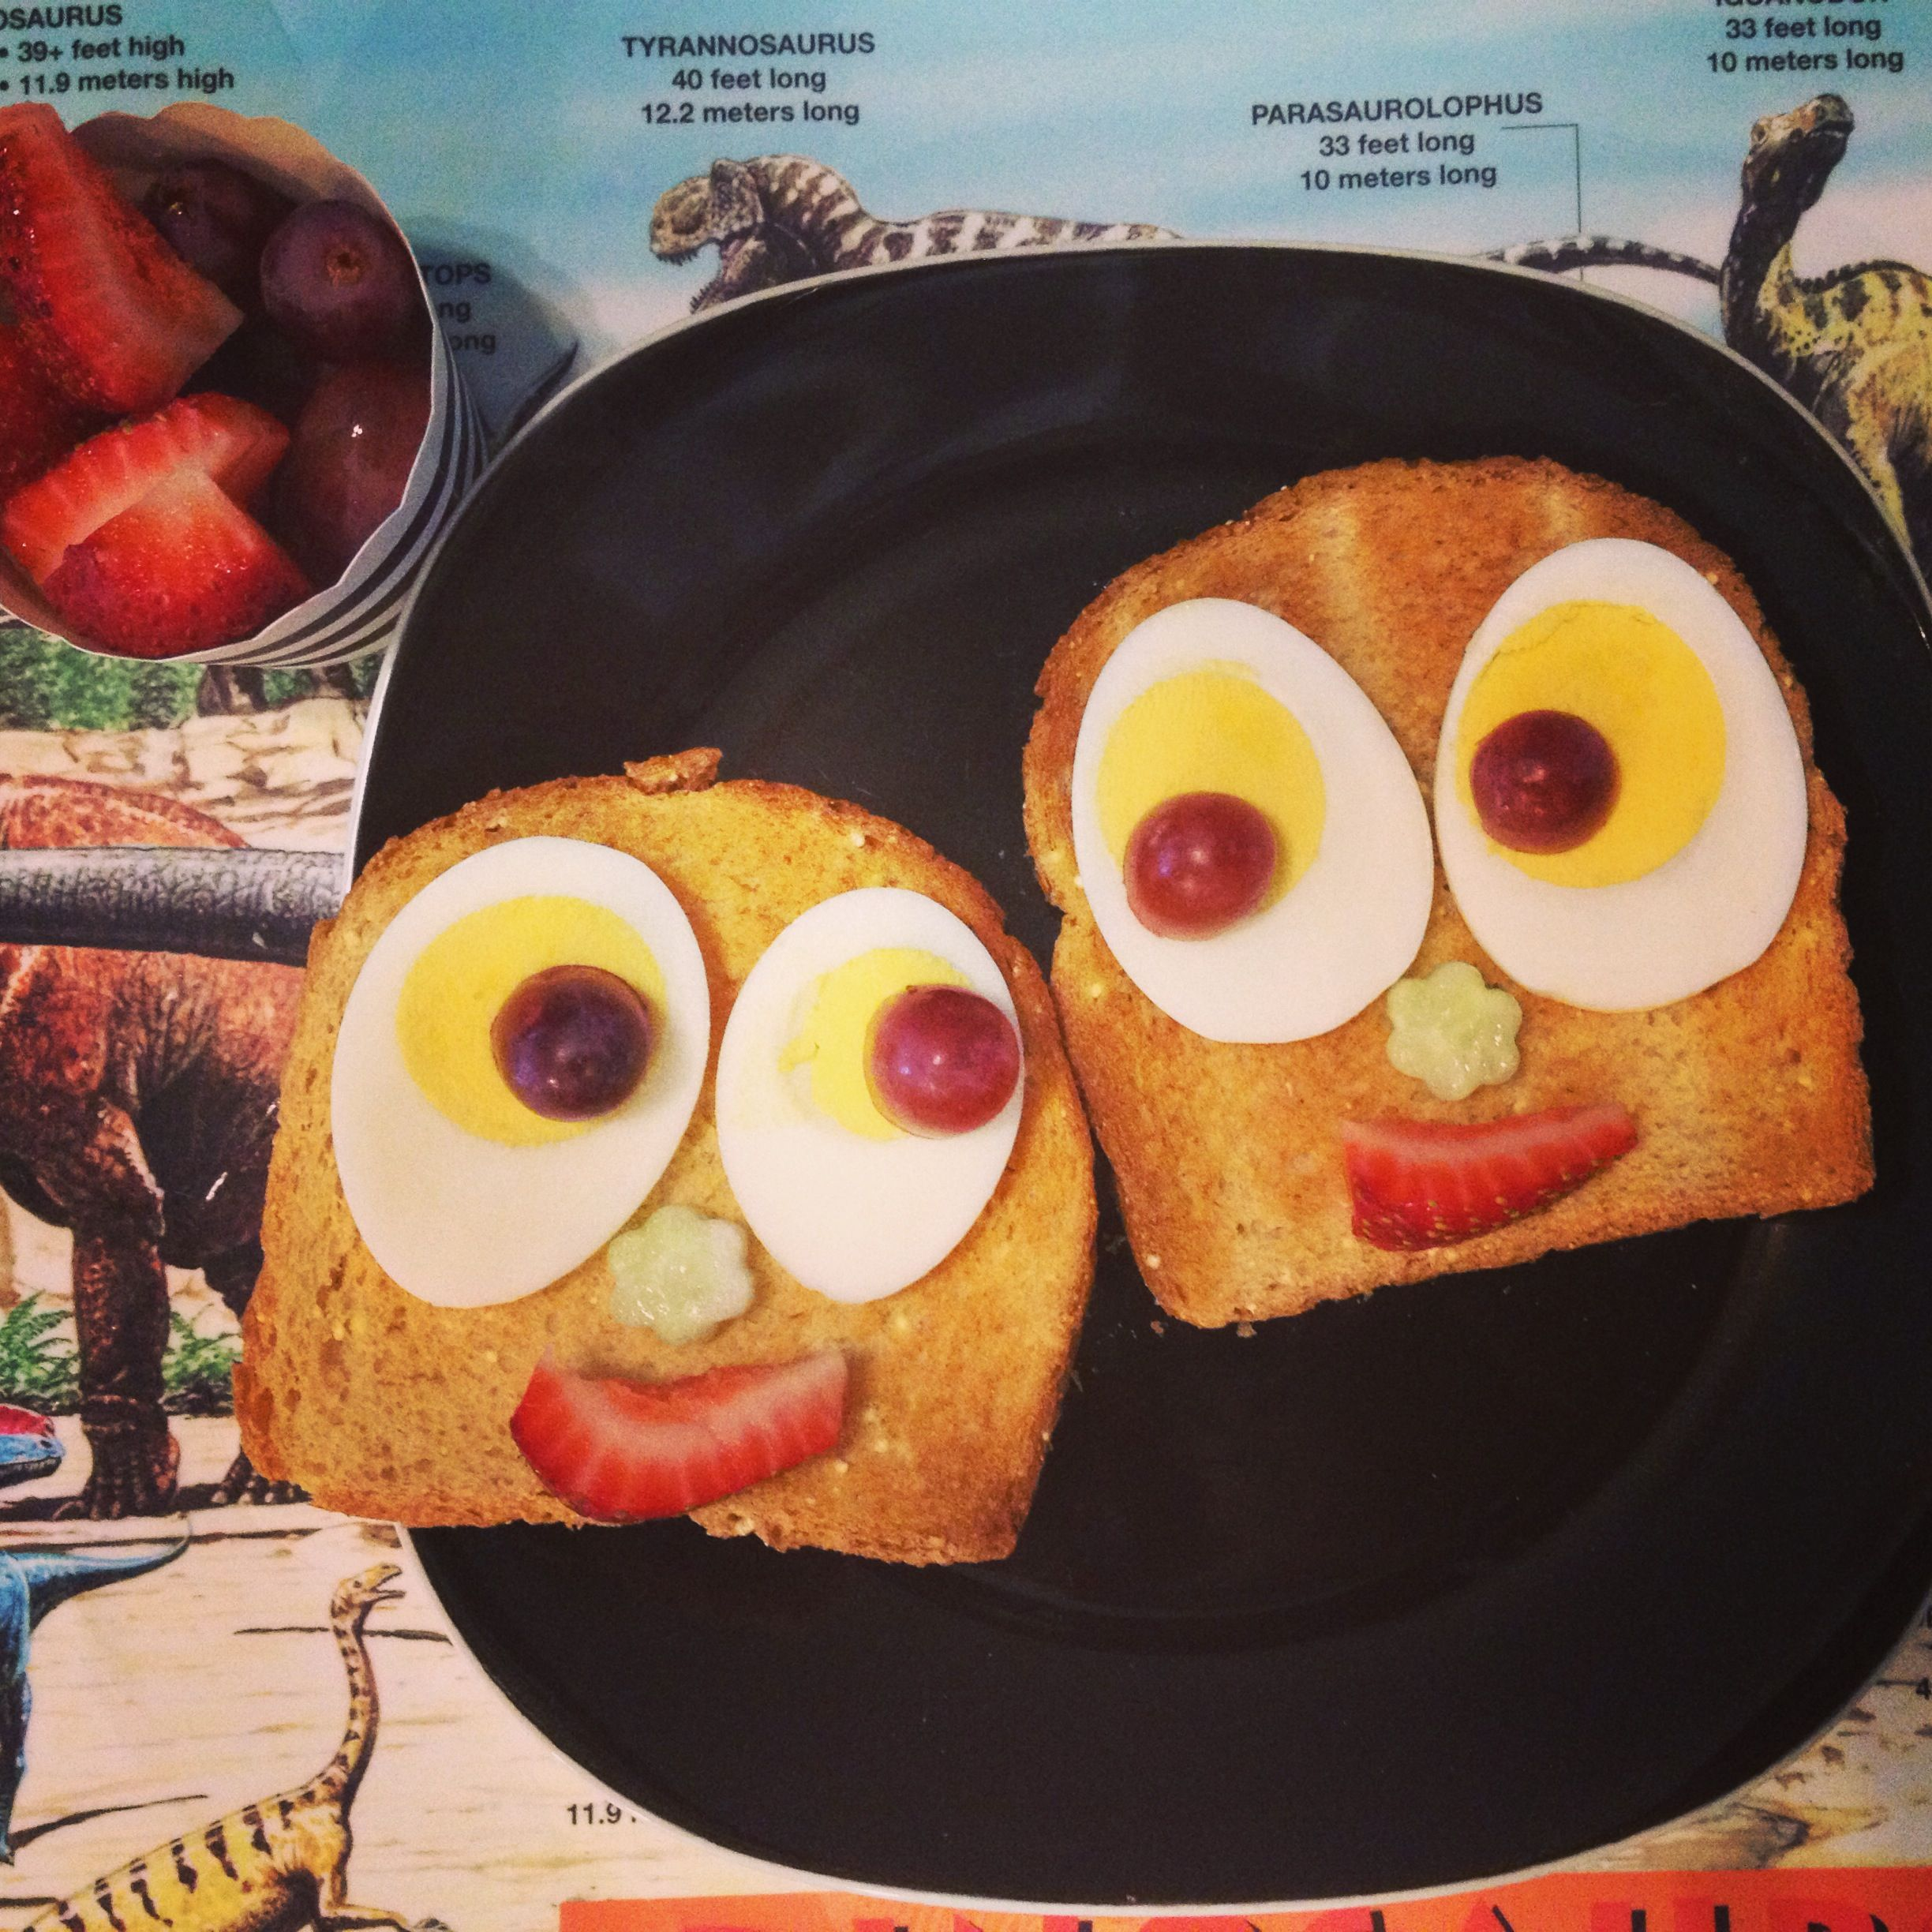 Toddler Breakfast Idea Millet Zucchini Toast W Hard Boiled Eggs Grapes Strawberry Cucumber